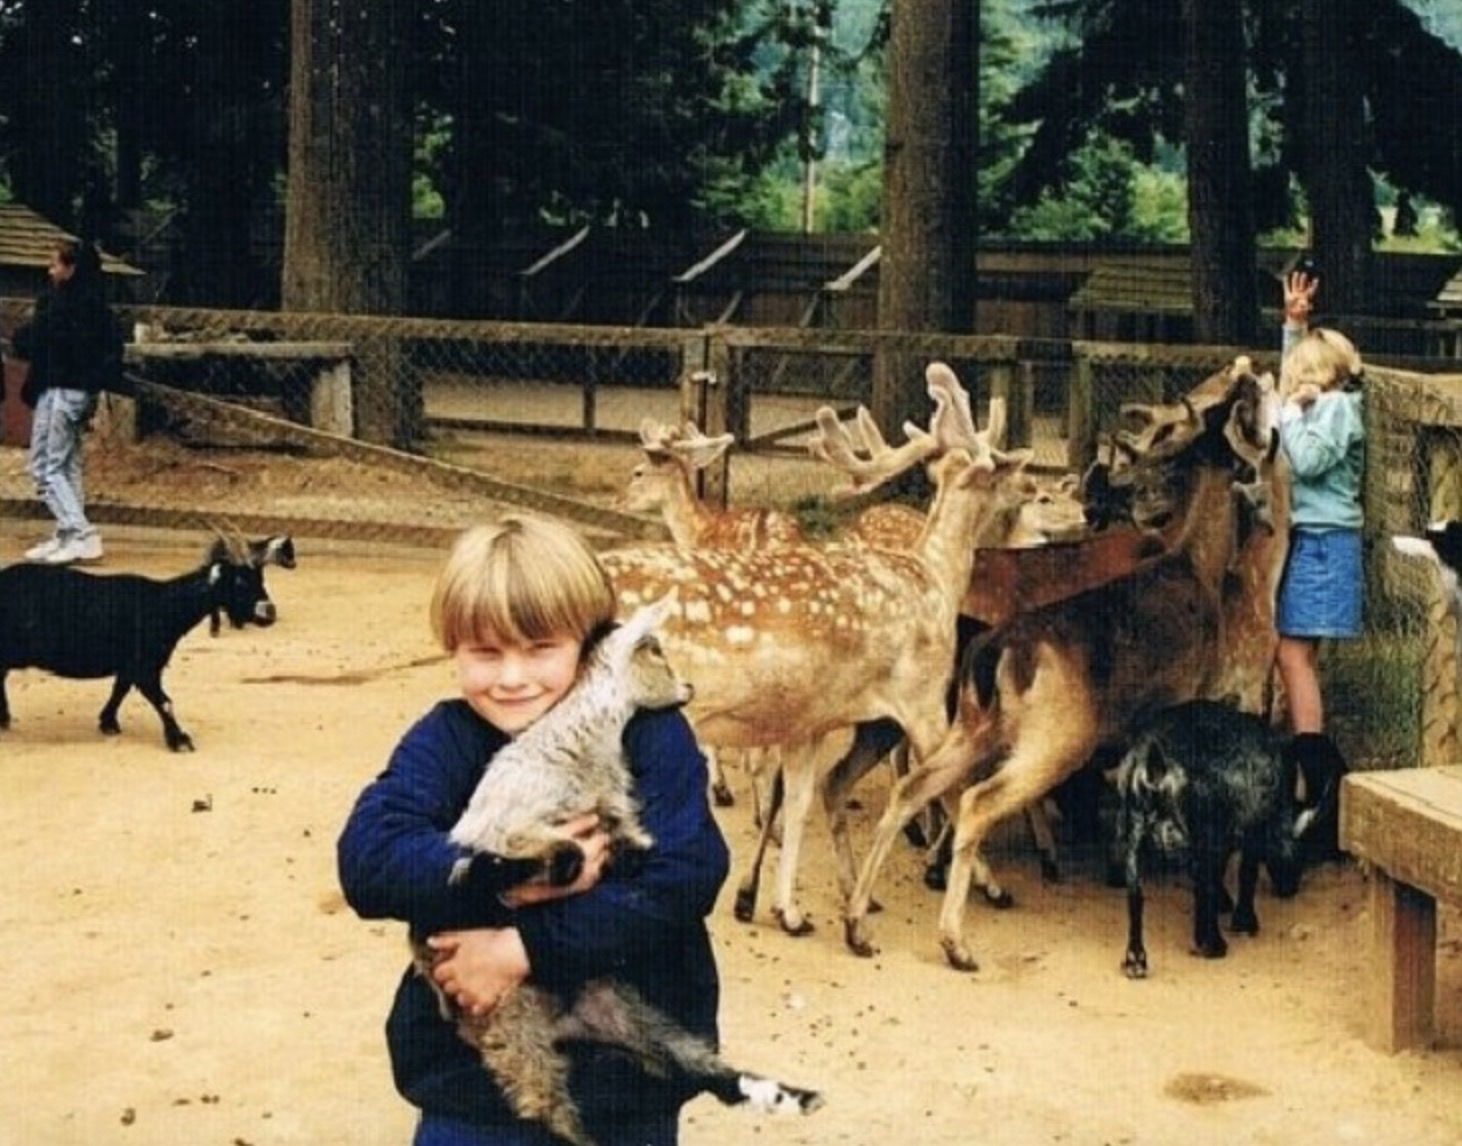 kid taking a cute phot with a deer while his sister is getting attacked by deer in the background